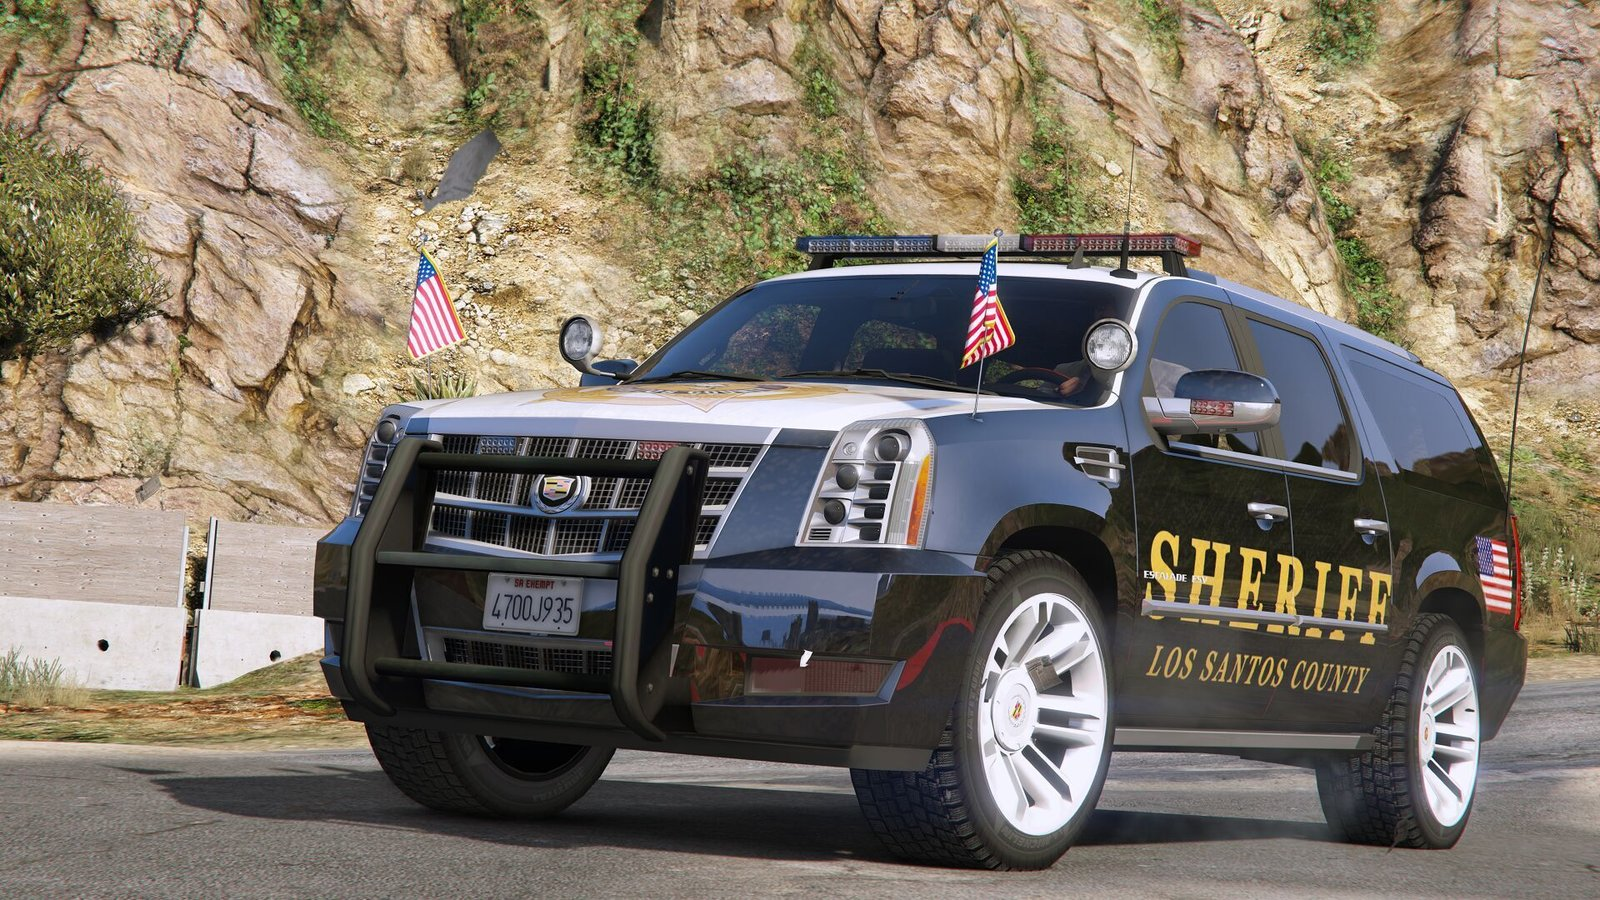 Cadillac Escalade Esv 2012 Police Version Vehicules Pour